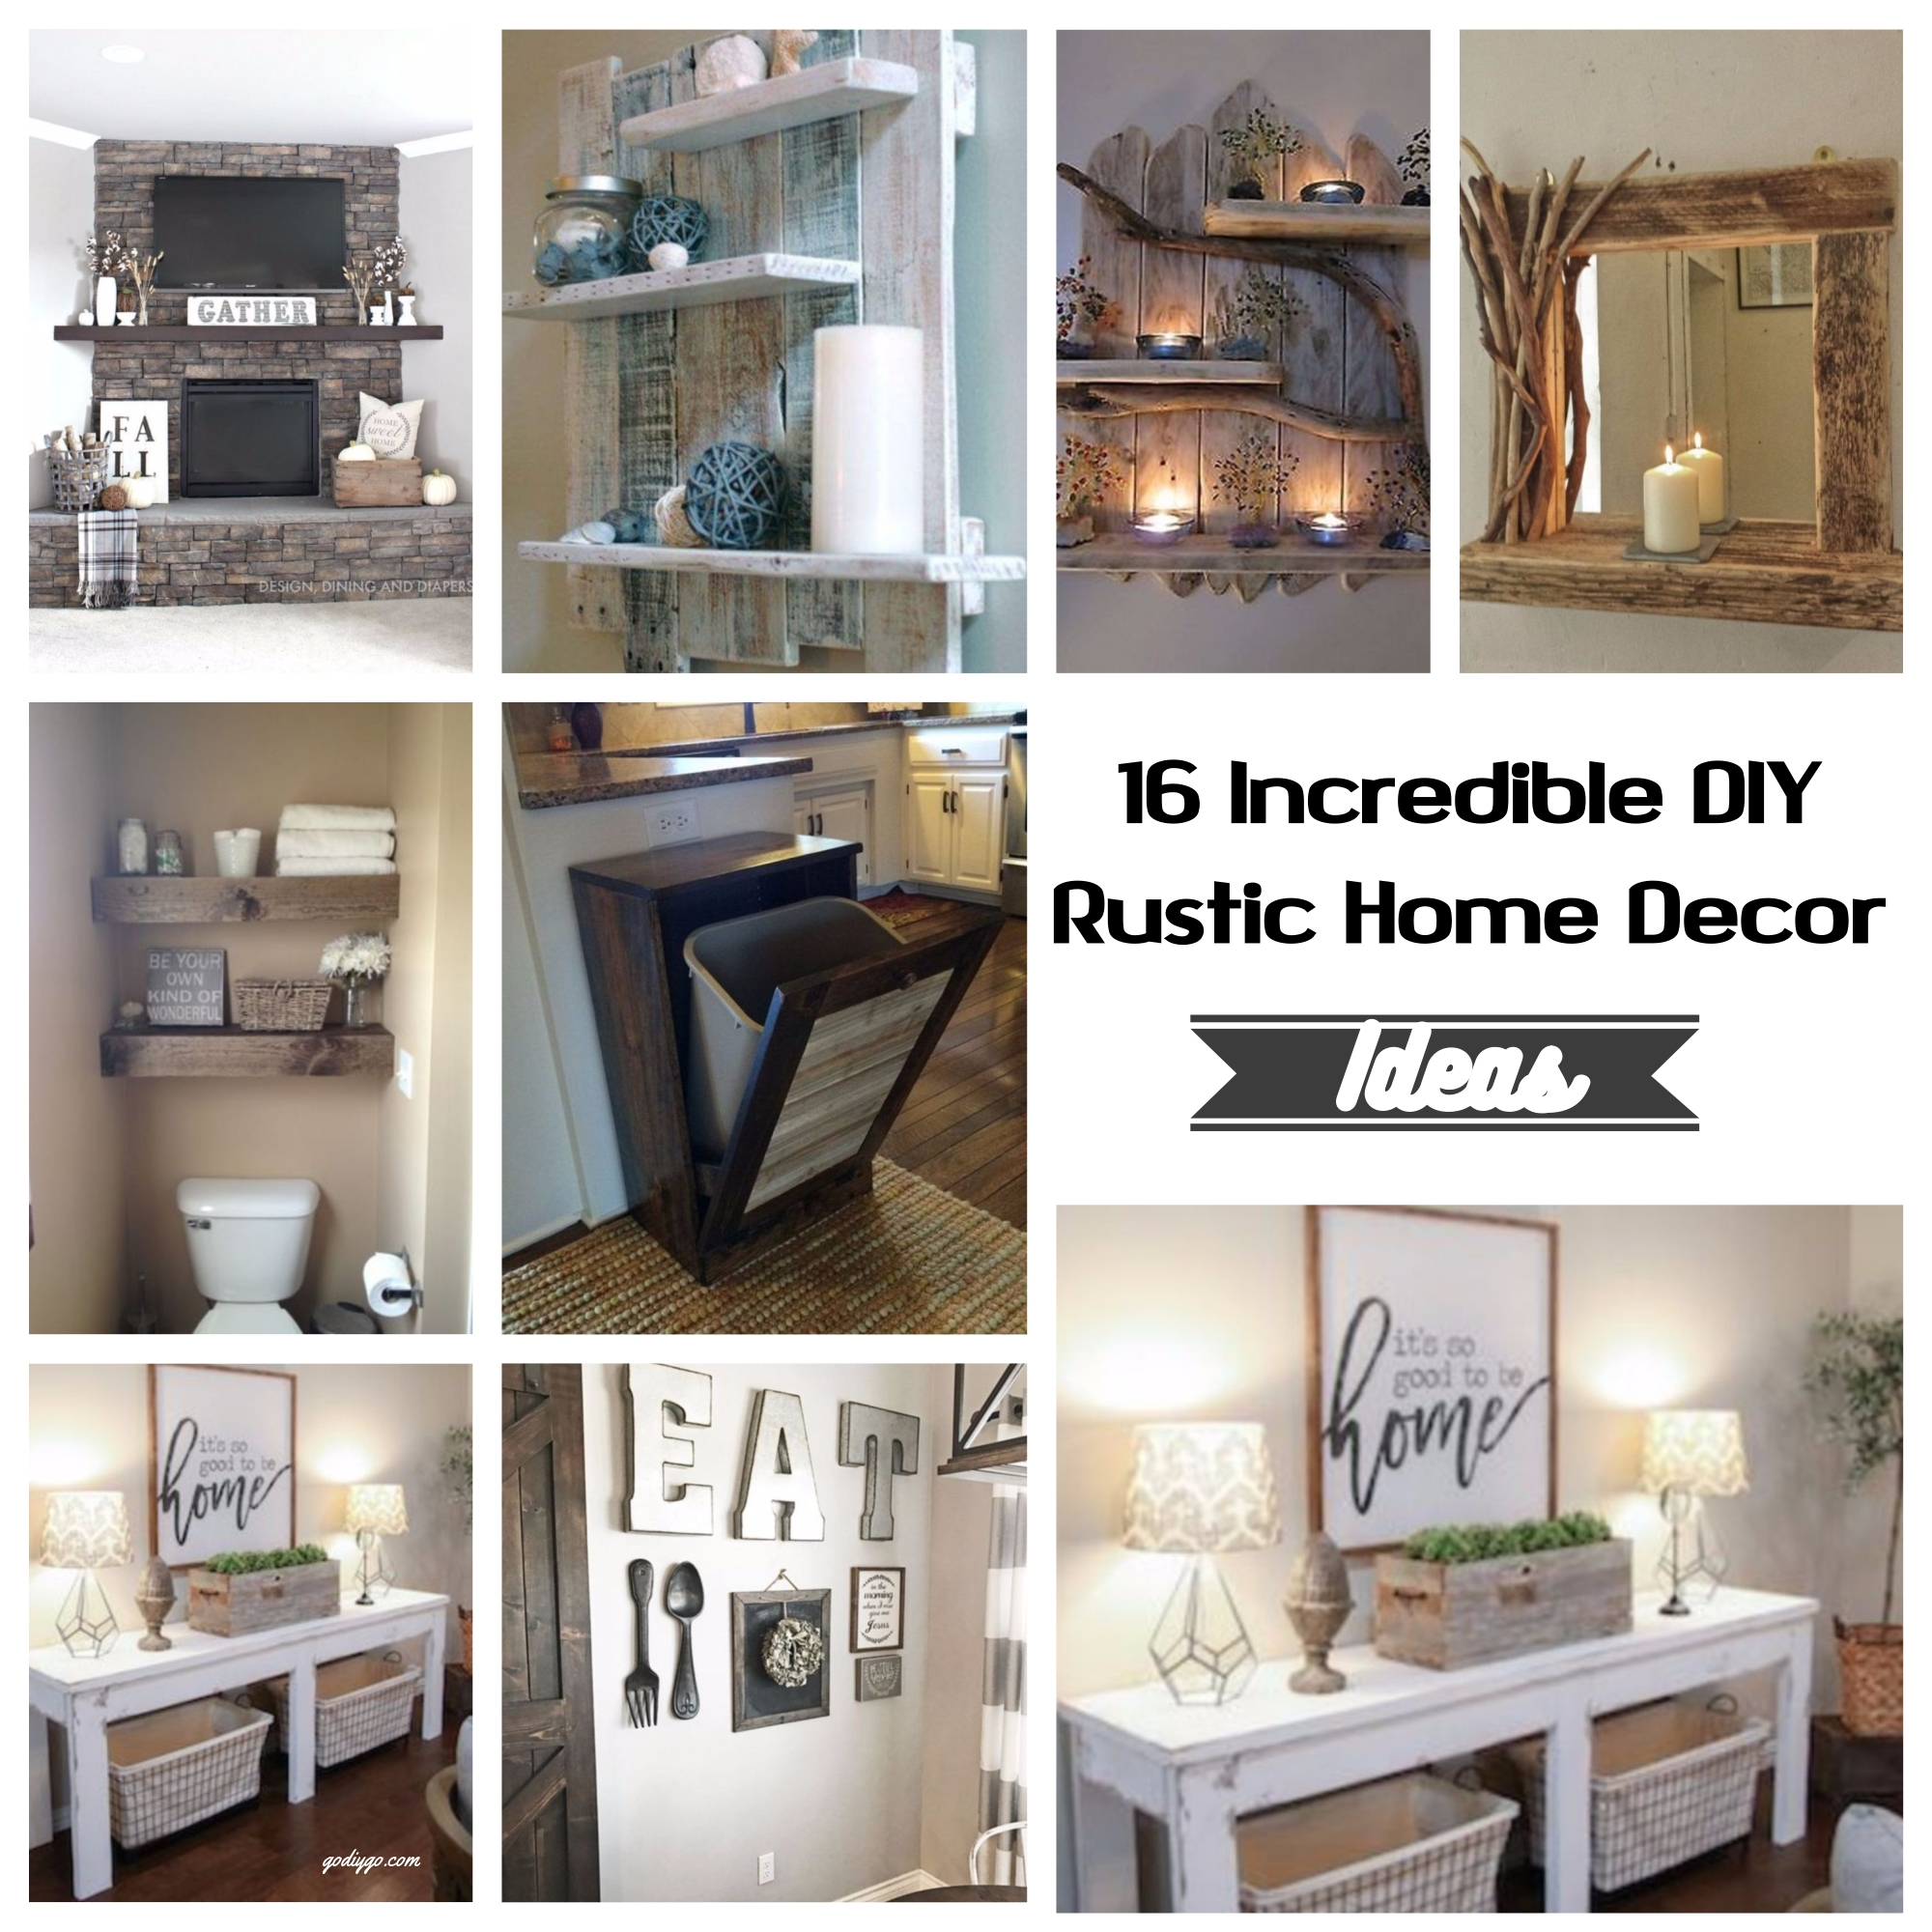 Rustic Decor Ideas Diy: 16 Incredible DIY Rustic Home Decor Ideas